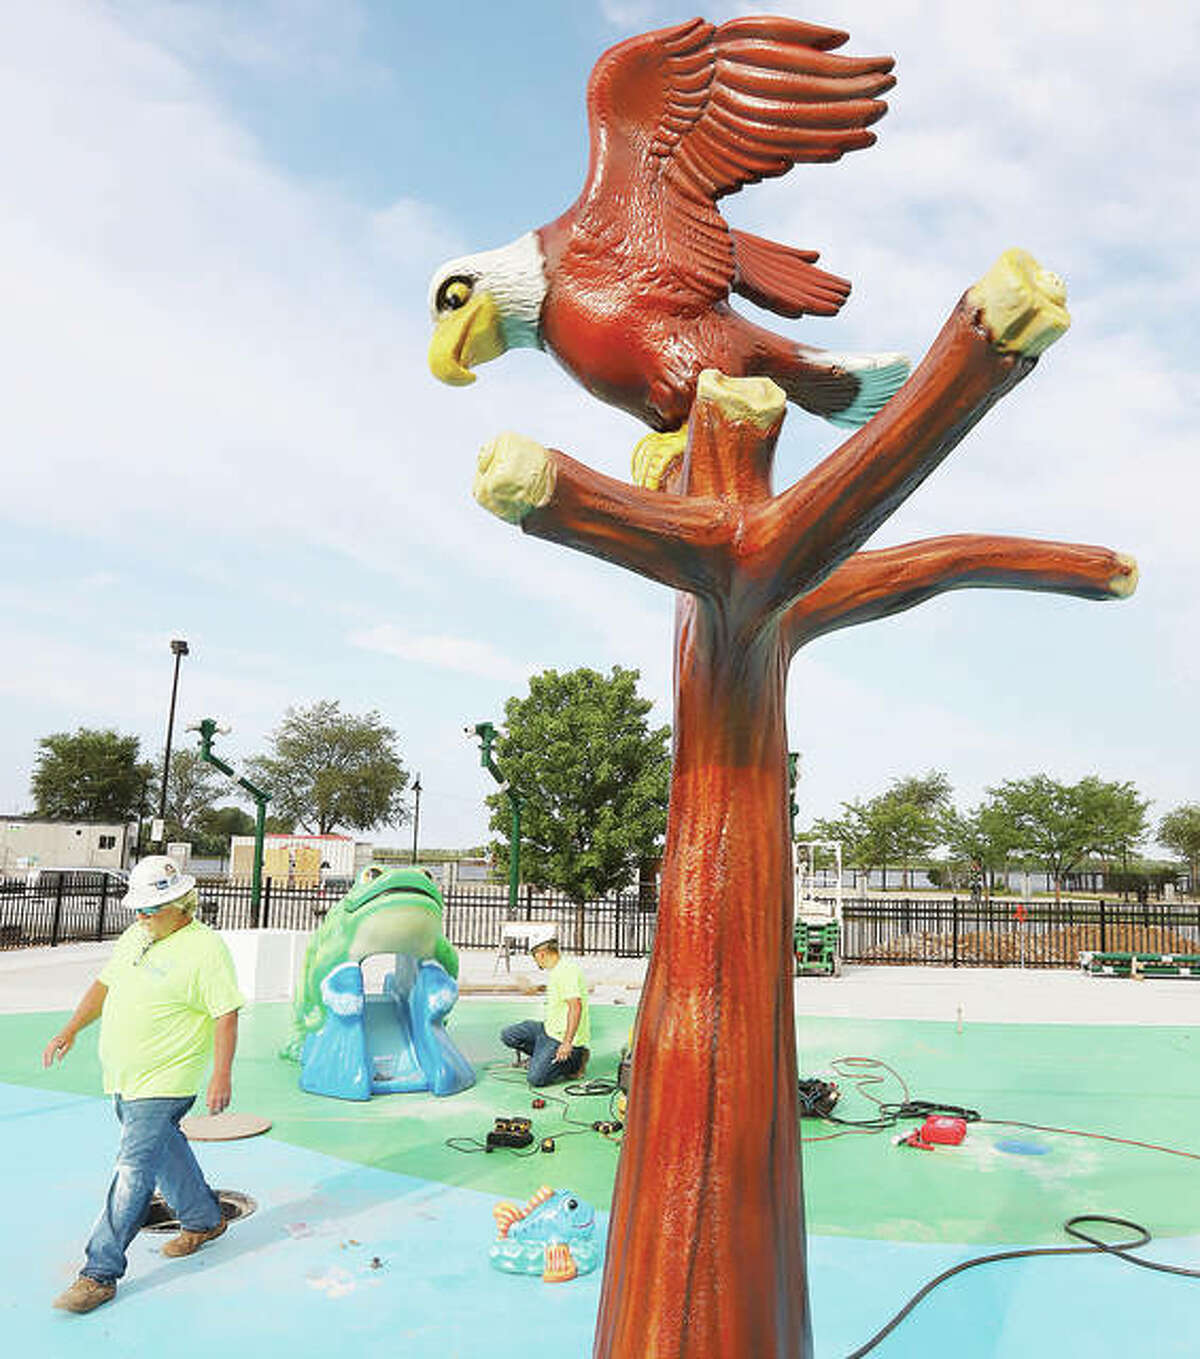 Workers of Friday were installing the plastic water sprayers at Alton's new splash pad in Riverfront Park. The pad has two bald eagles, a frog, a steamboat and other smaller animals - all of which will shoot out water when the pad is completed later this summer.